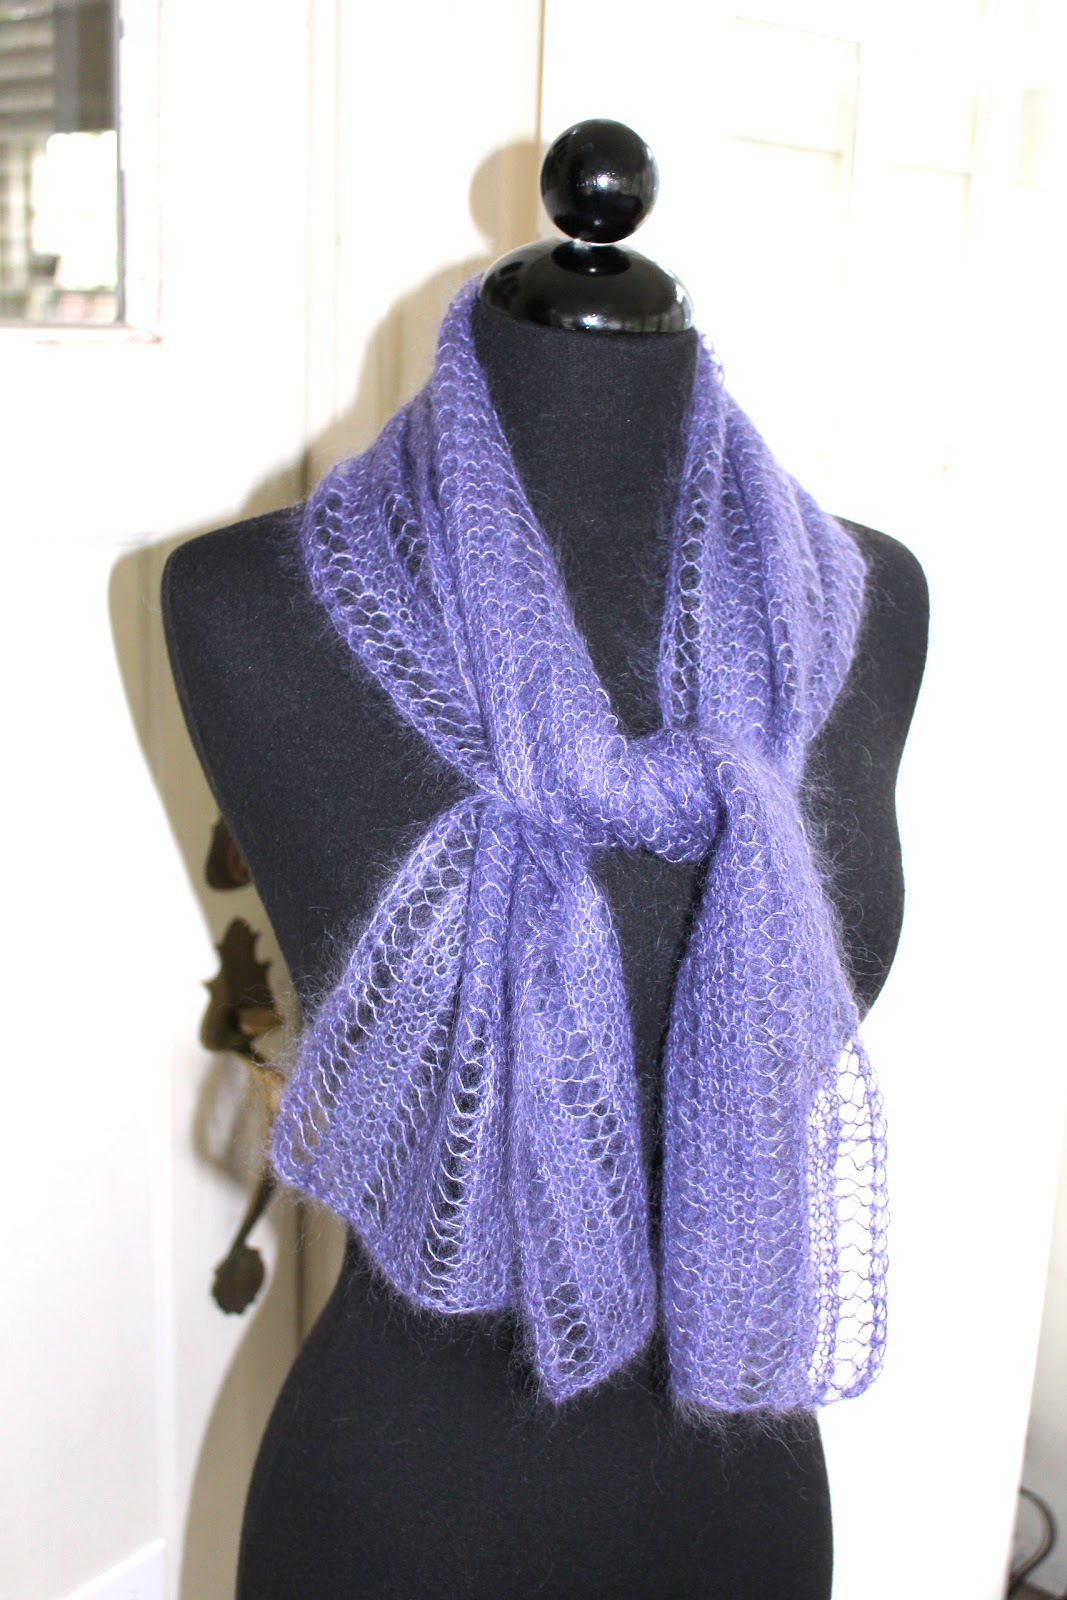 Knitting Pattern Scarf Rowan : Absolute Knits: Rowans Kidsilk Haze Free Lace Scarf Pattern